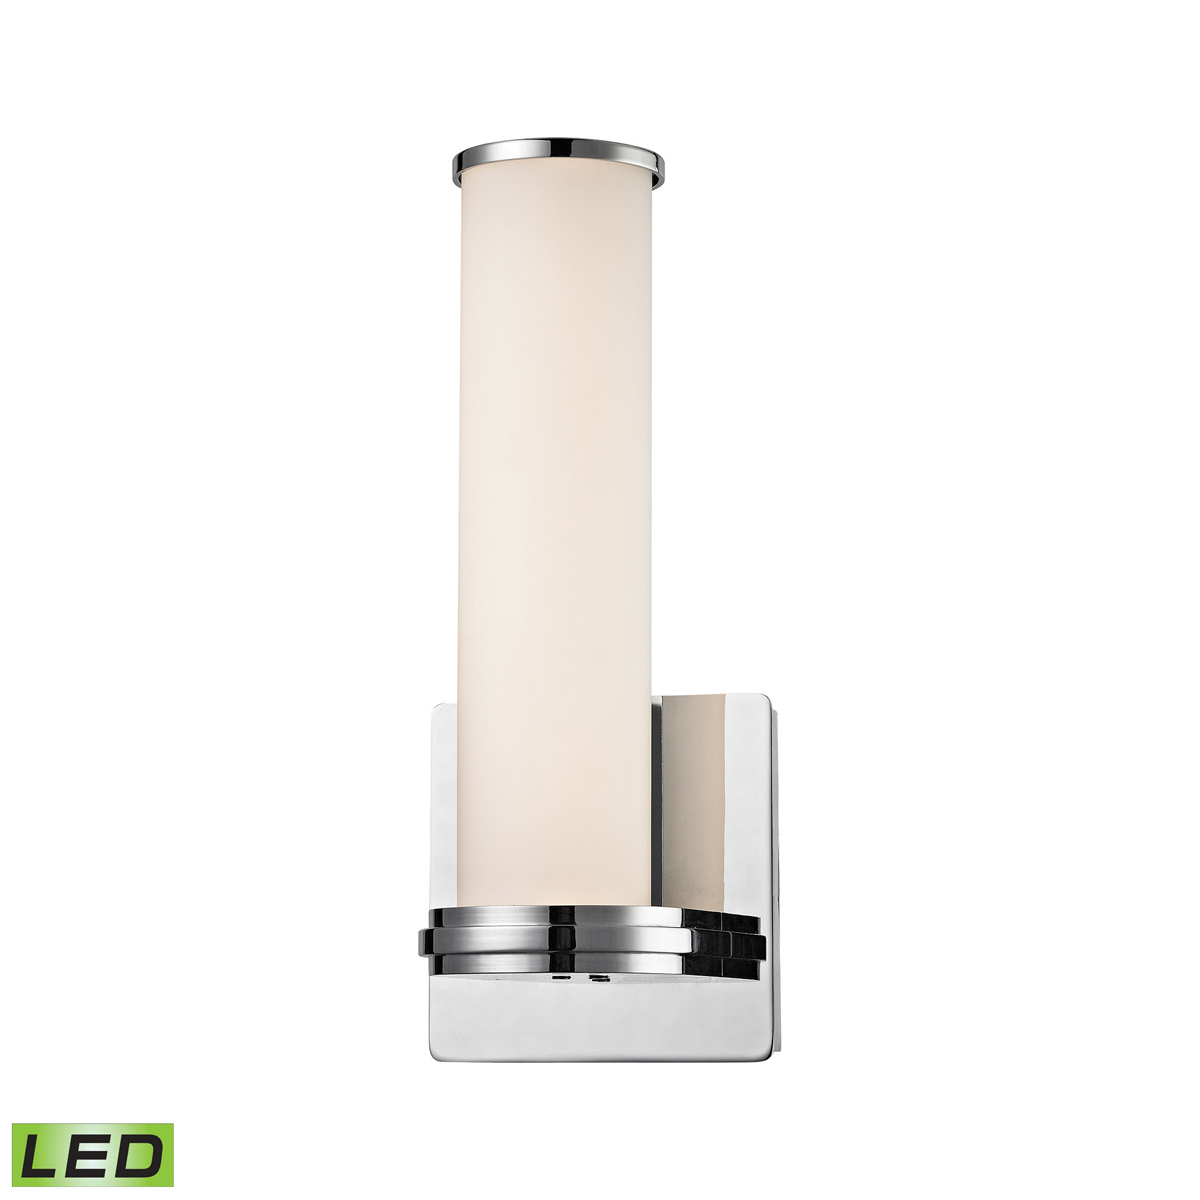 Alico Lighting (WSL1301-10-15) Baton 1 Light LED Wall Sconce in Chrome & White Opal Glass